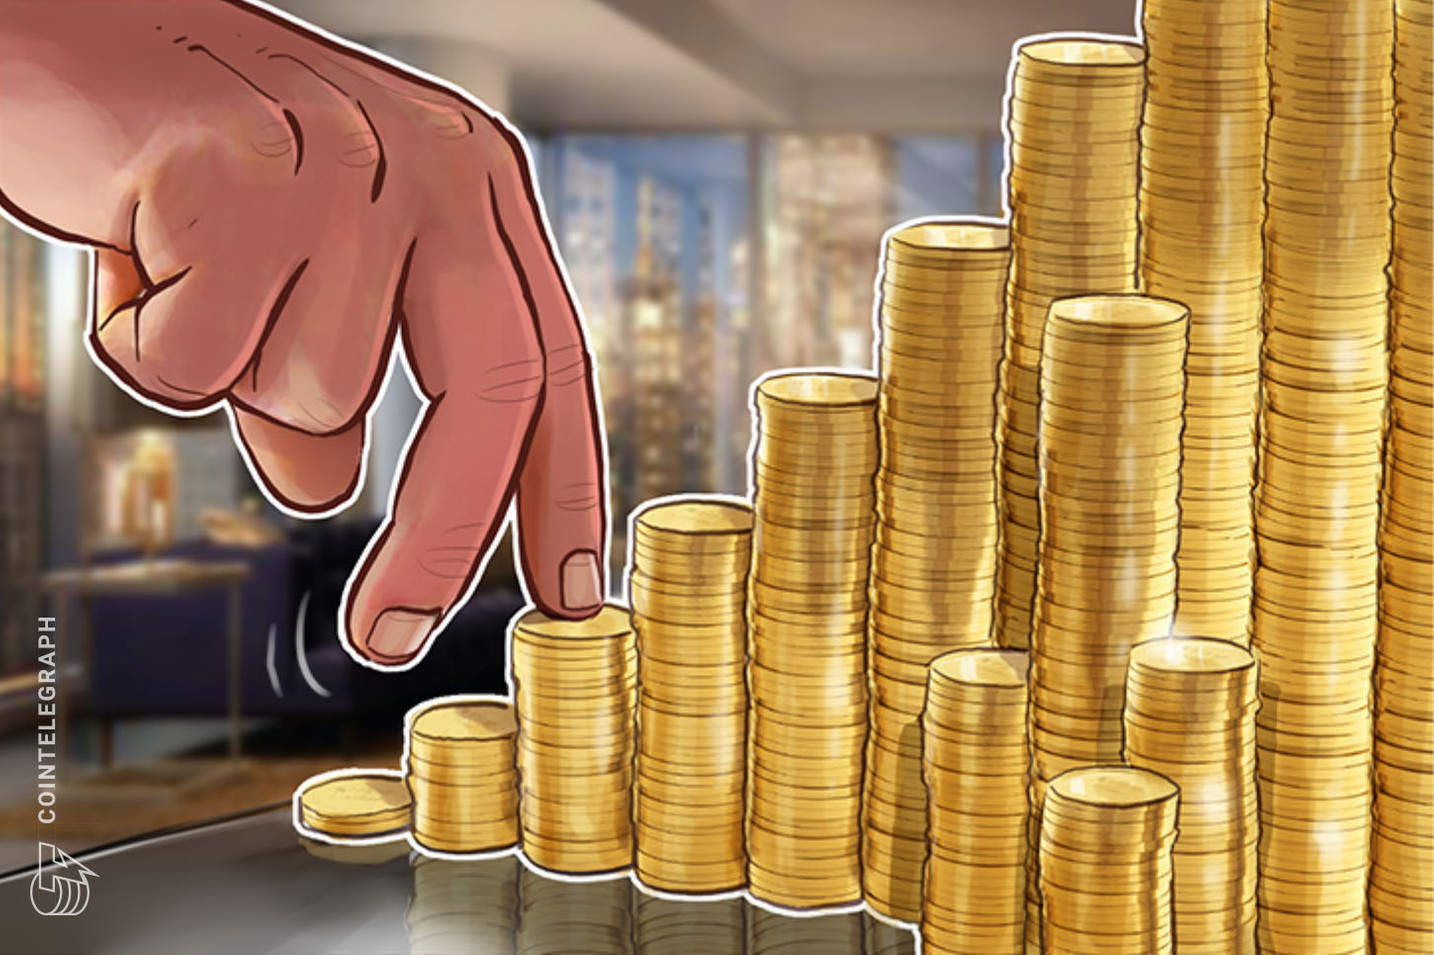 Pantera Capital, Coinbase Back Crypto Startup Staked in $4.5 Million Round